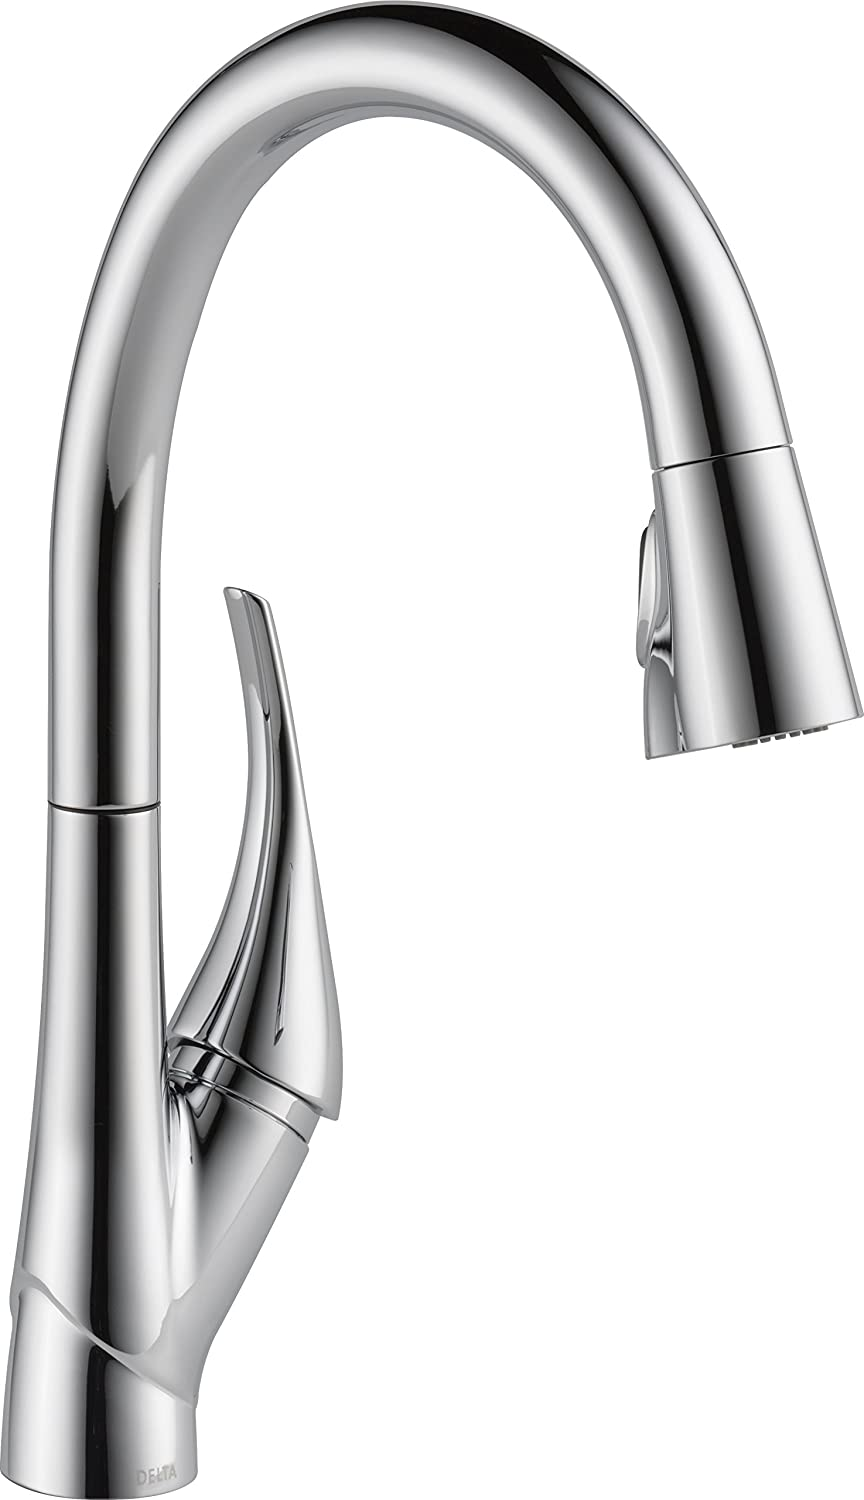 Delta Faucet Esque Single-Handle Kitchen Sink Faucet with Pull Down Sprayer, ShieldSpray Technology and Magnetic Docking Spray Head, Chrome 9181-DST